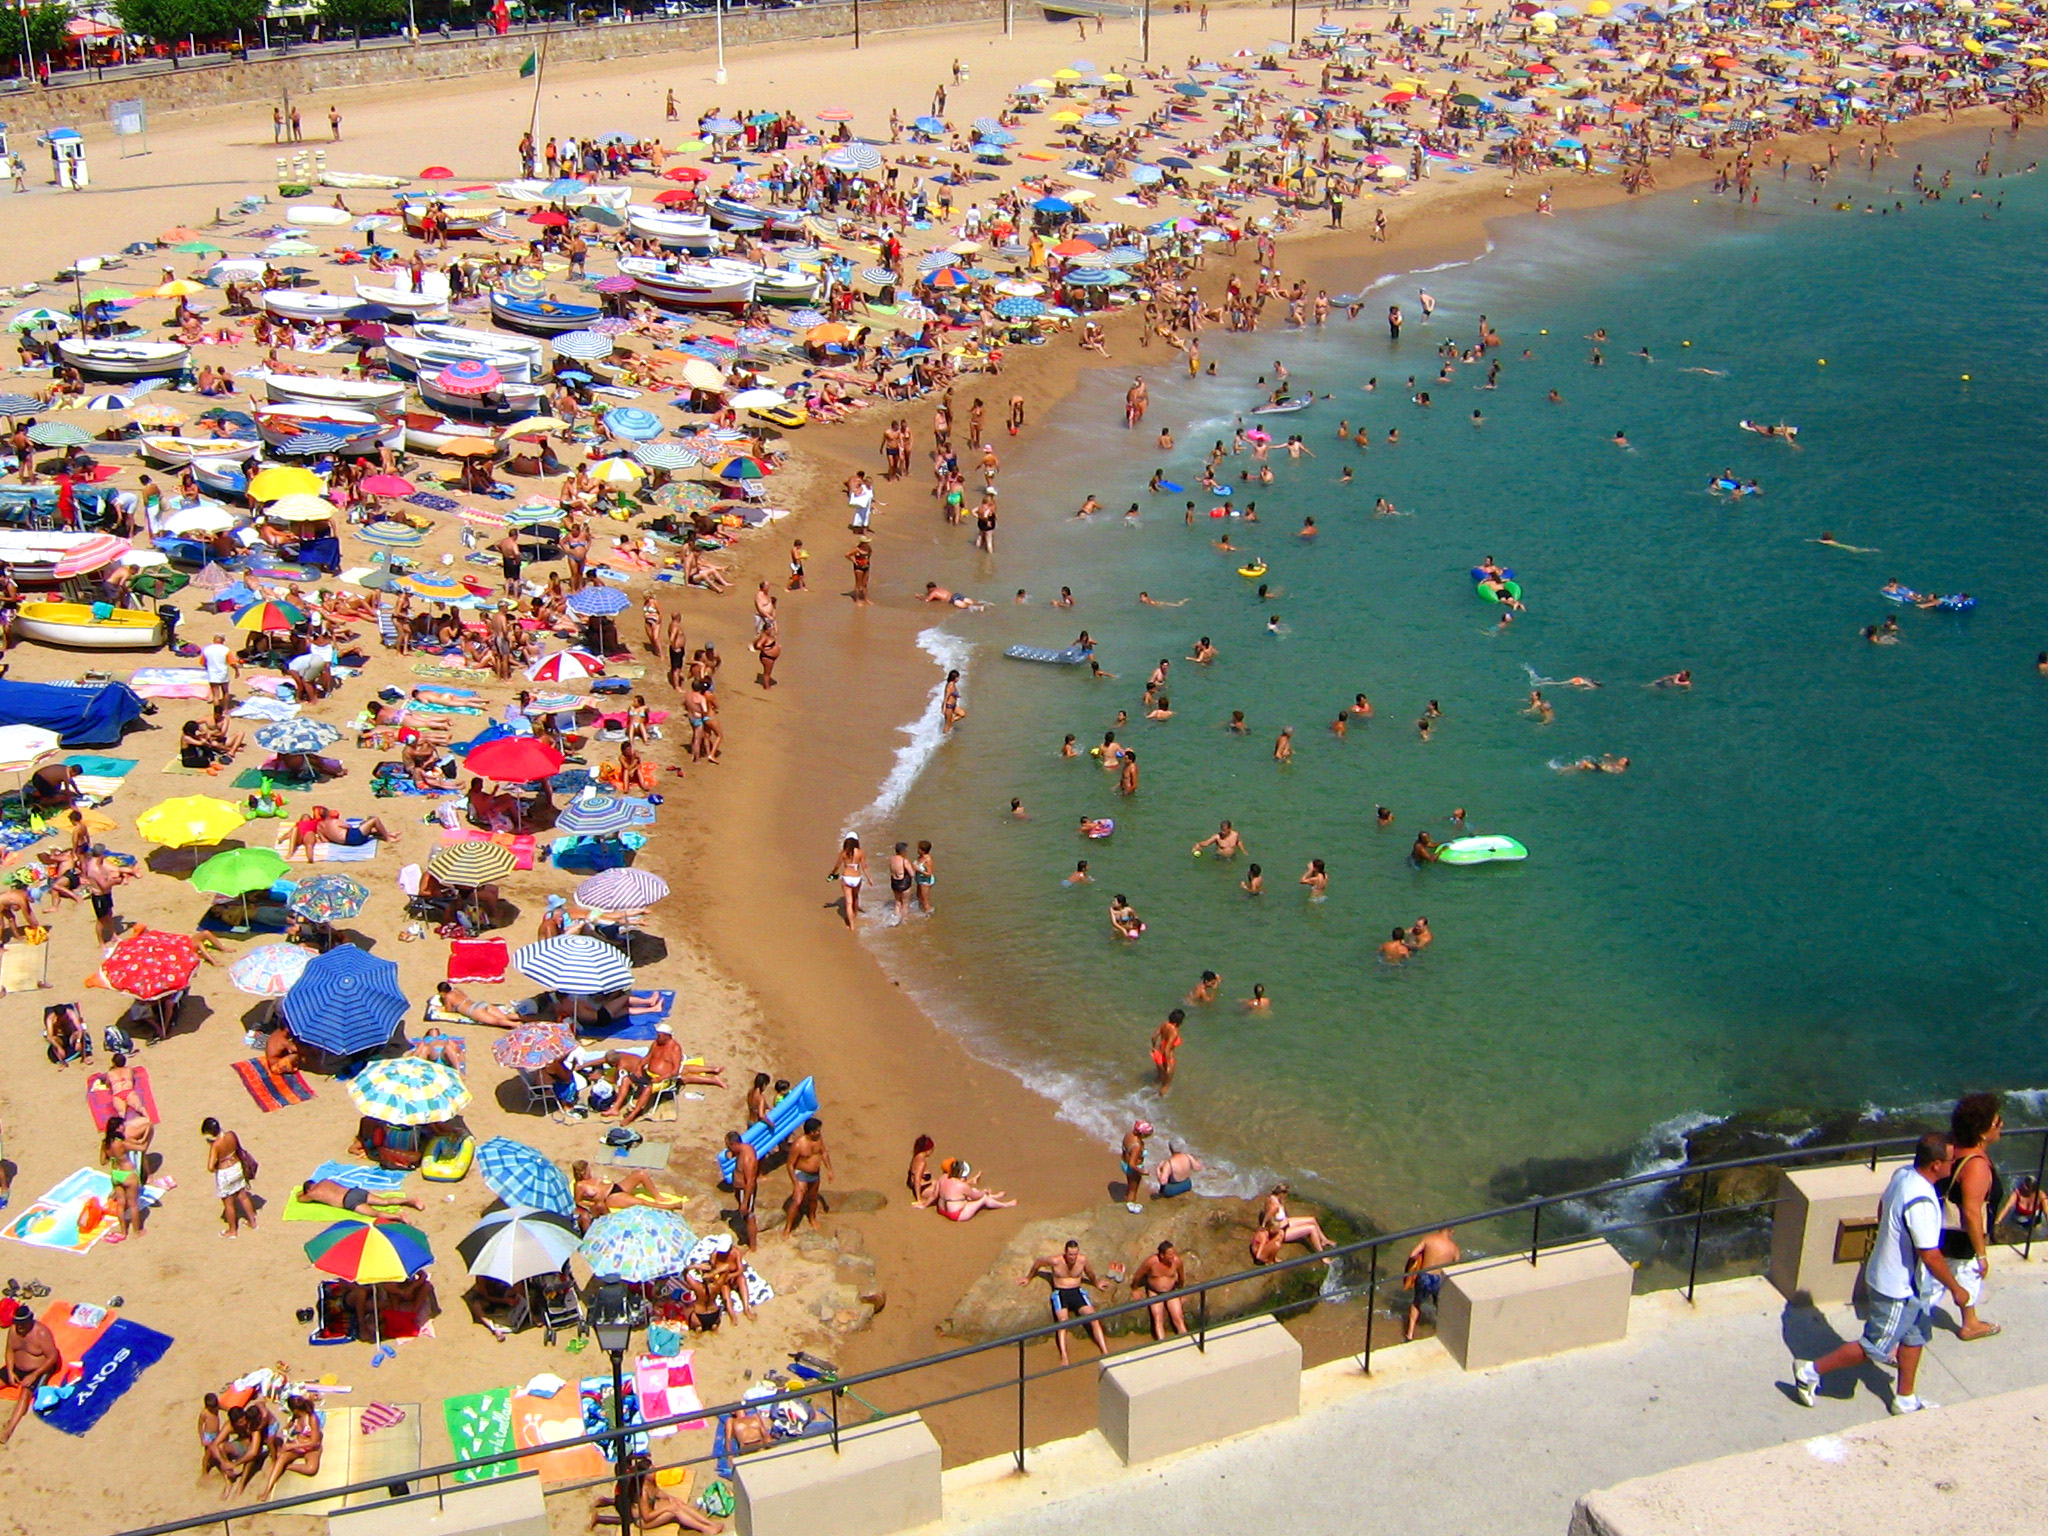 File:Typical Crowded Beach.jpg